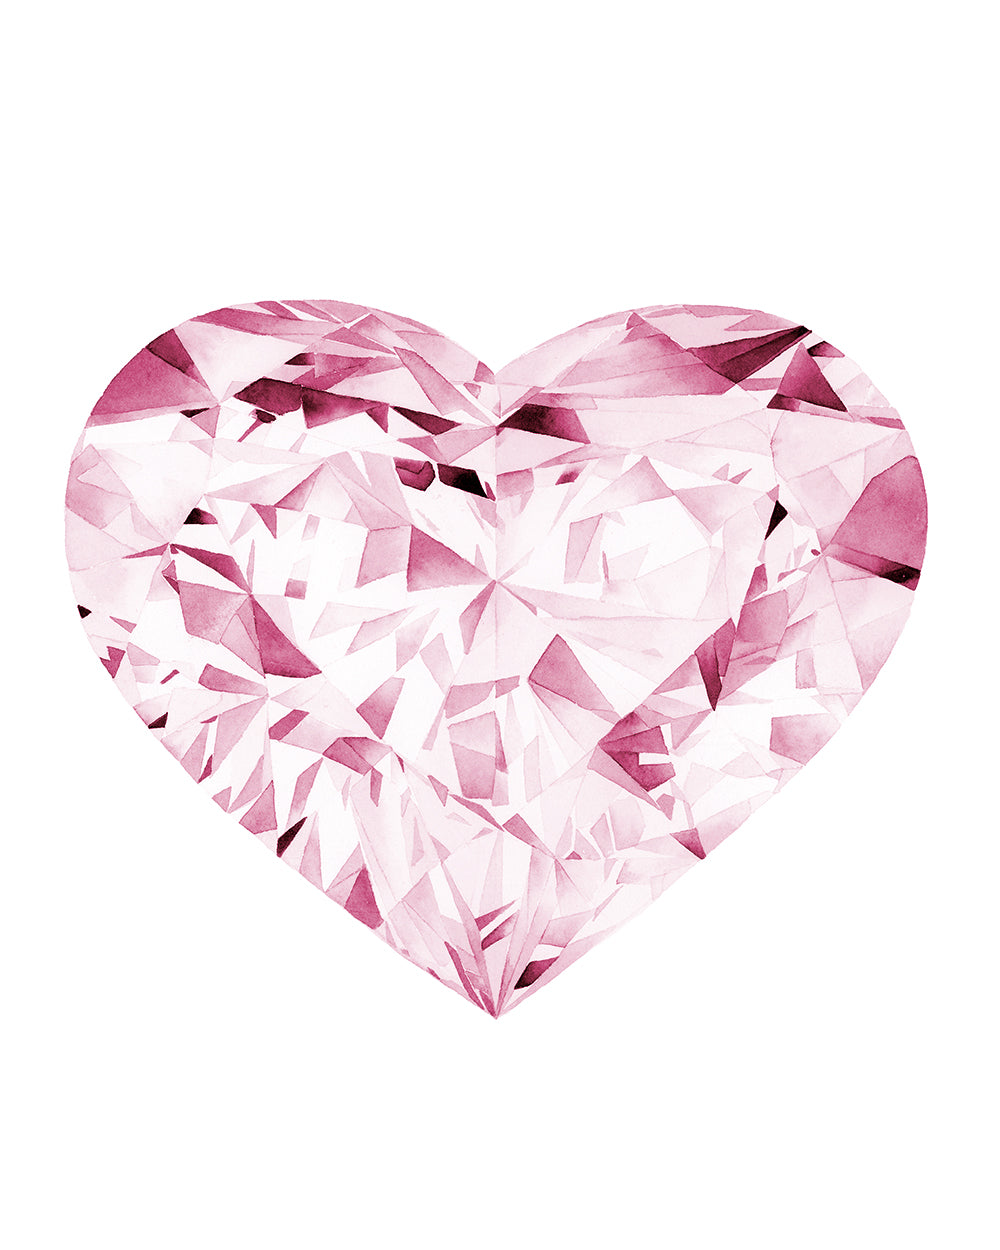 Watercolor Pink Diamond Painting - Heart - Art Print